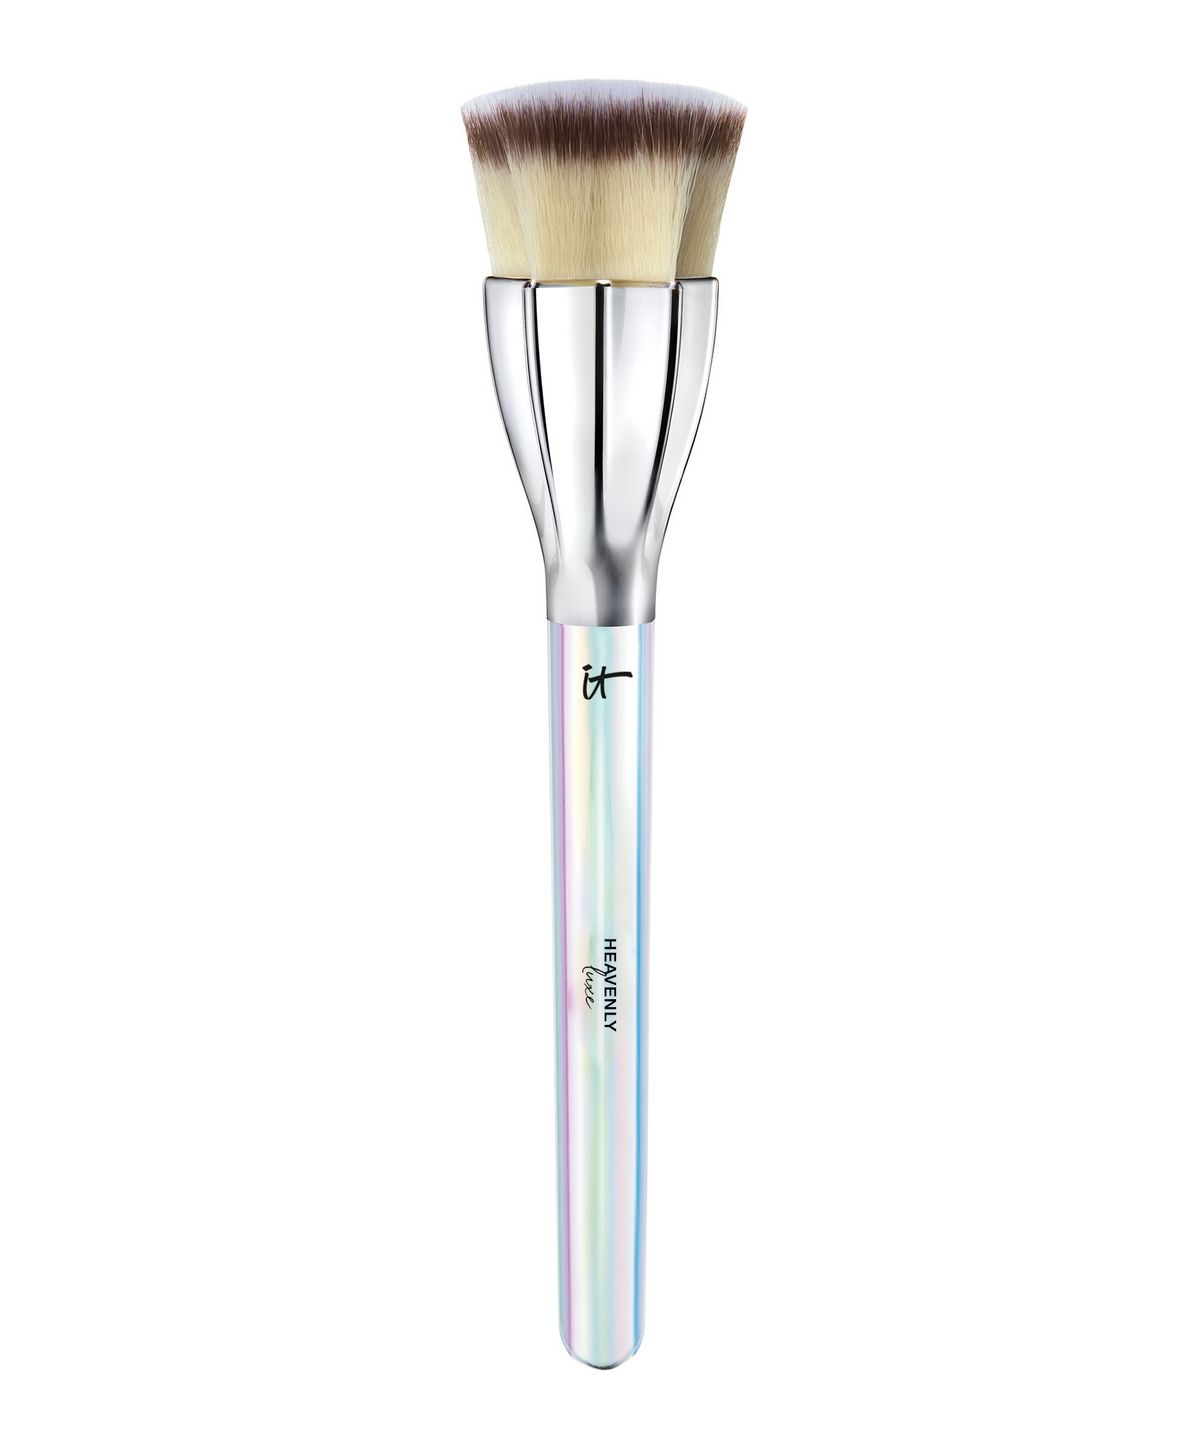 IT Cosmetics Limited Edition Star Brush